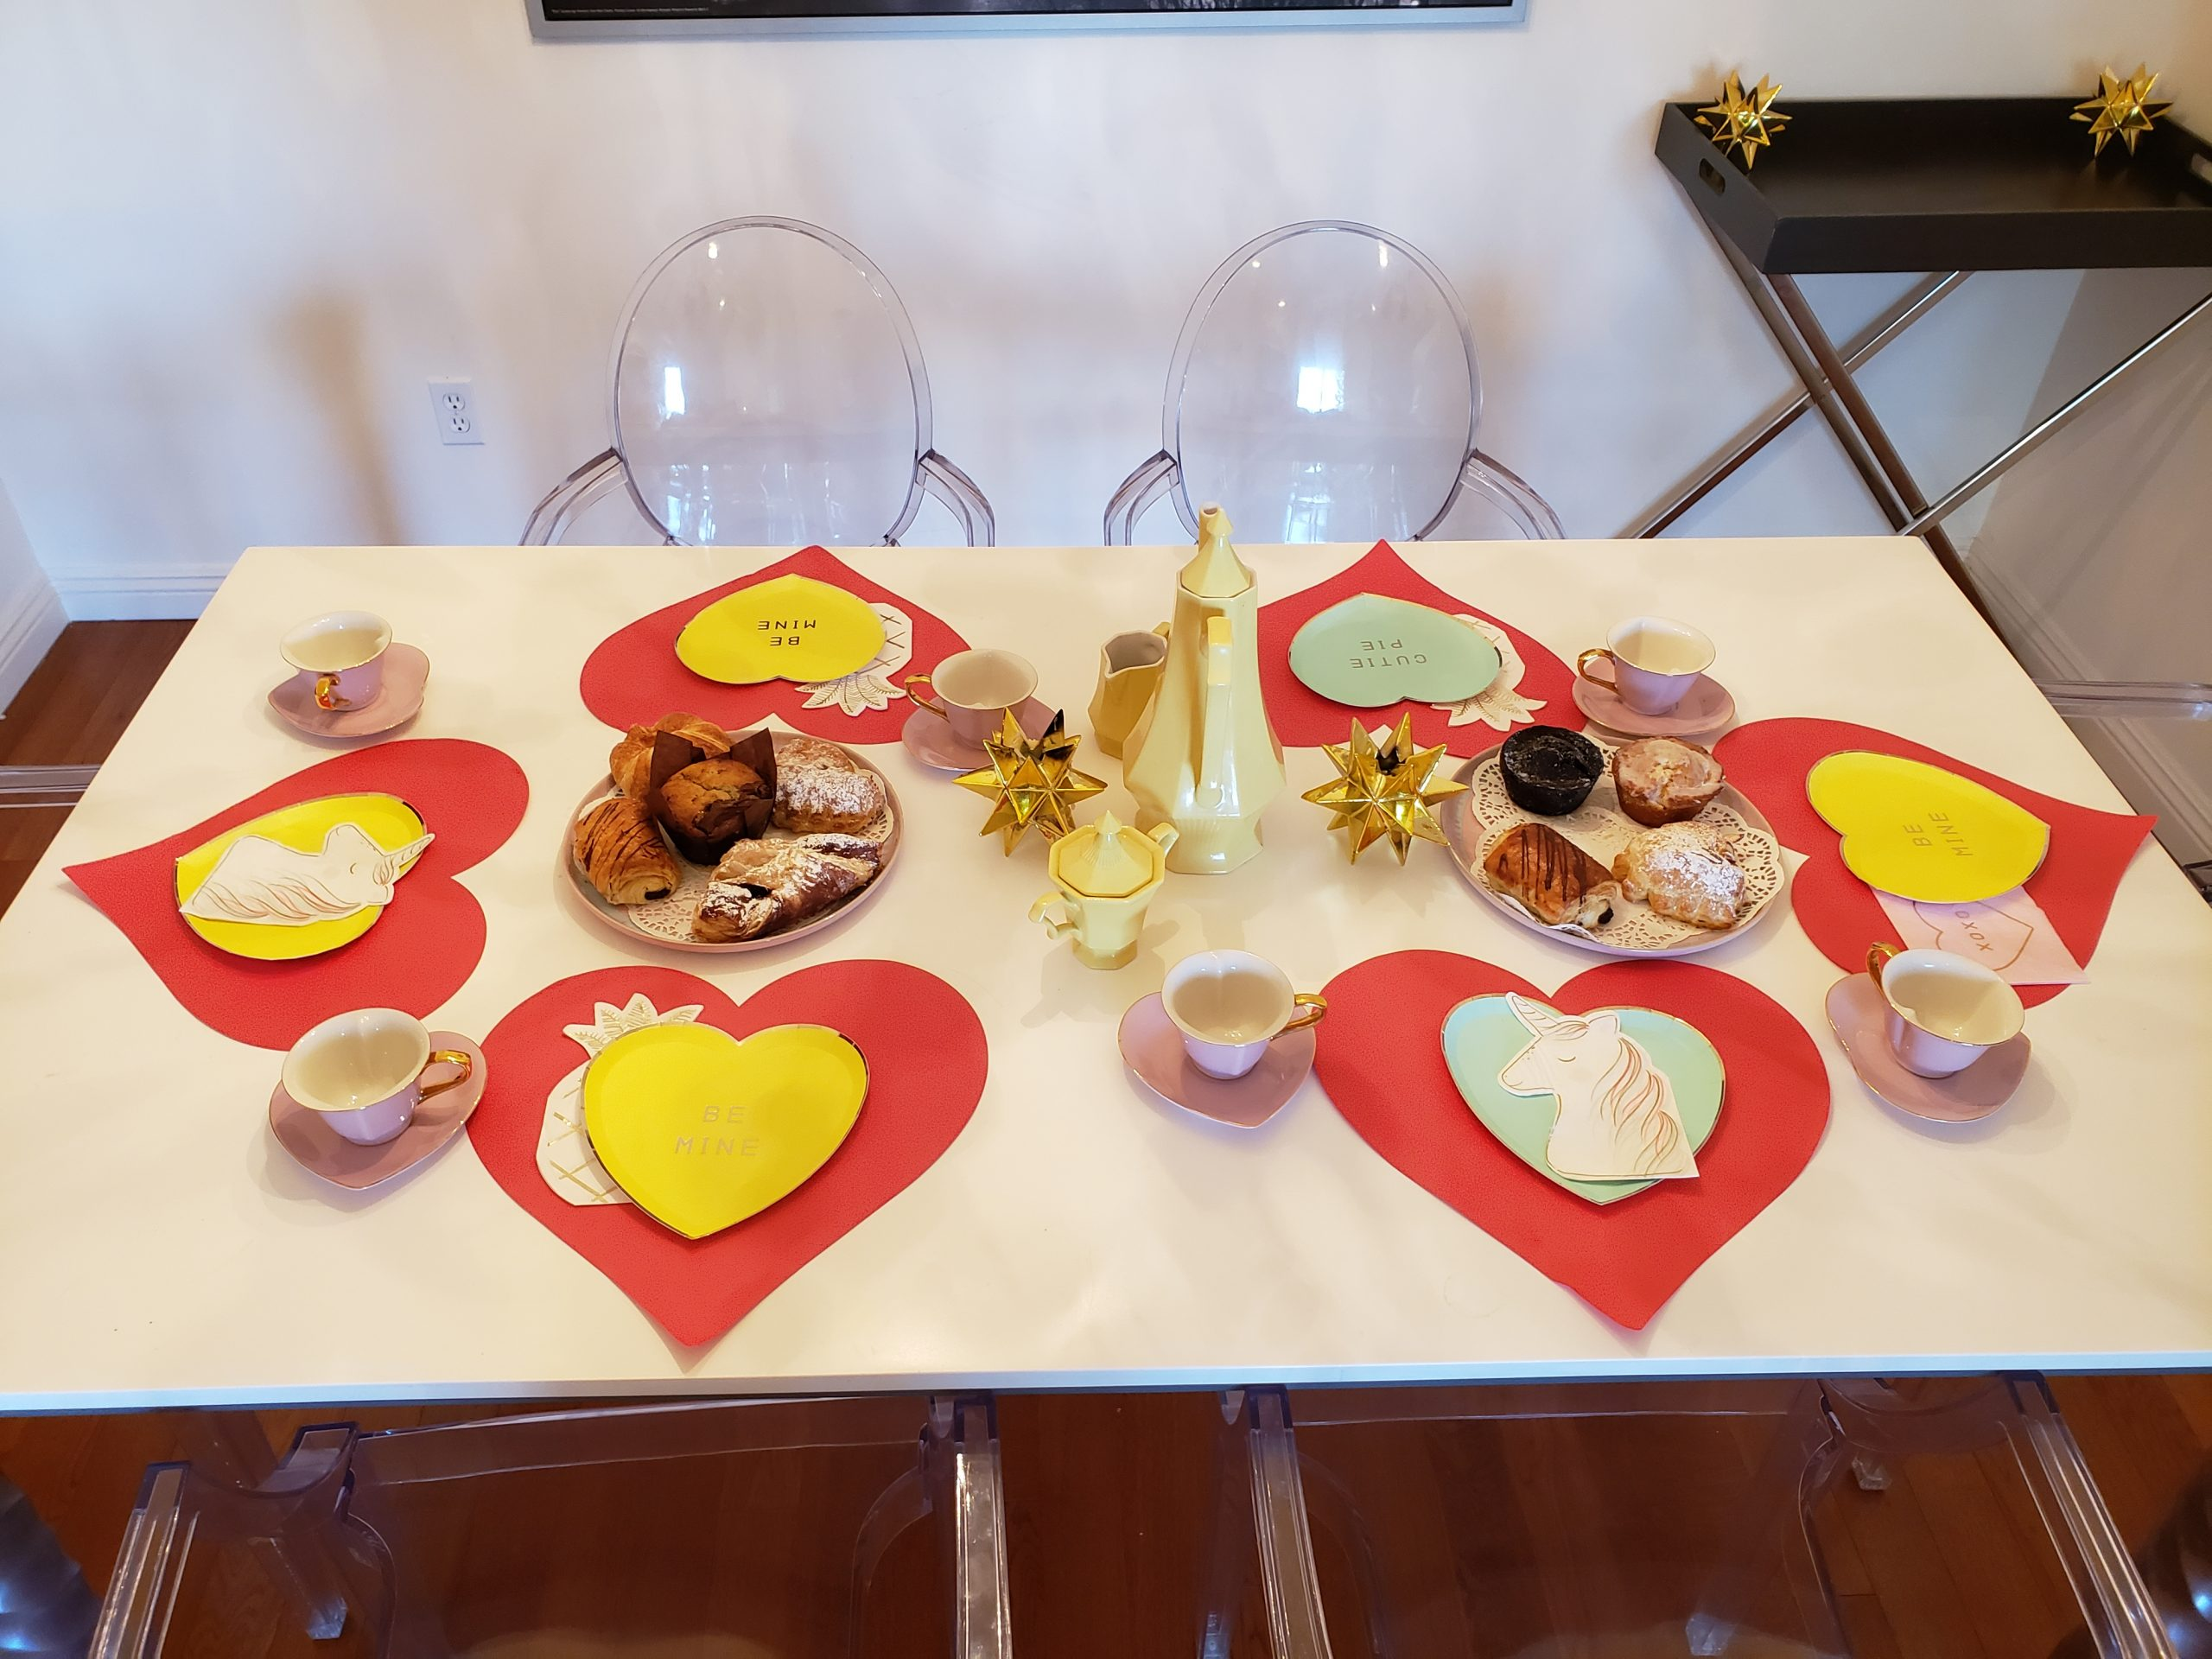 A table set with Valentine's Decorations